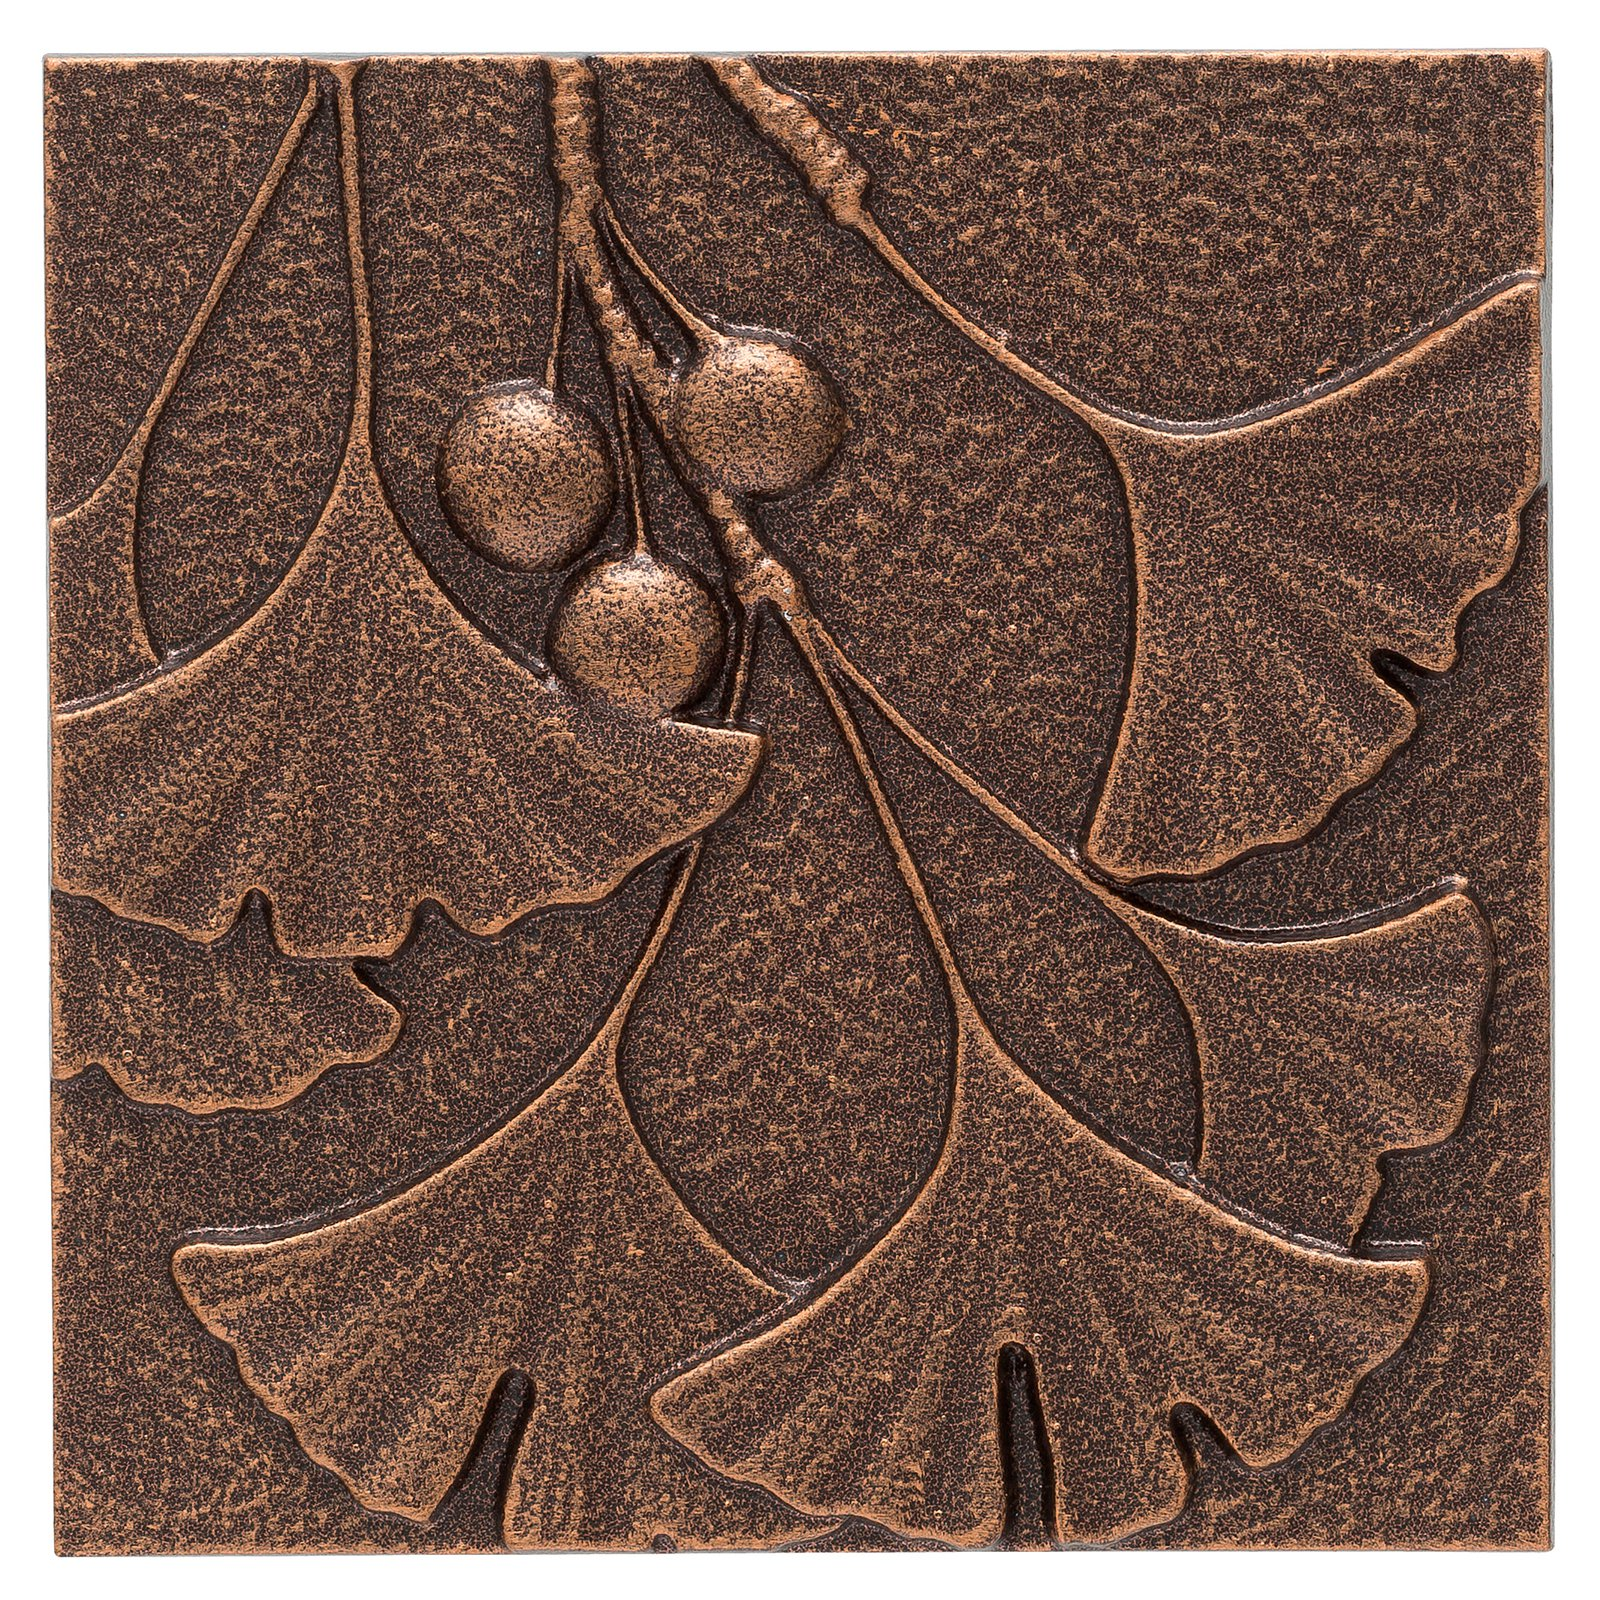 Gingko Leaf Wall Decor